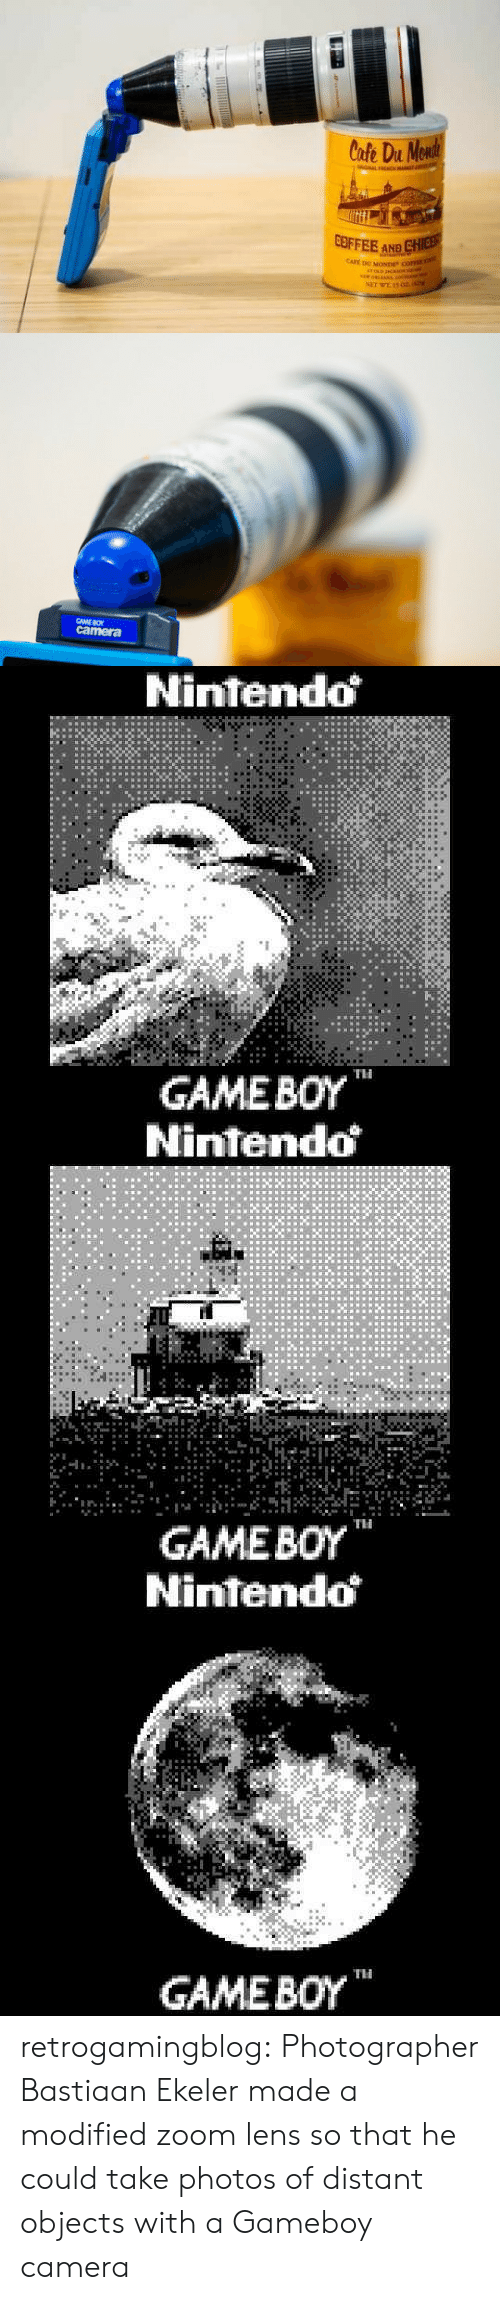 "Nintendo: Cofe Du Monde  GAL FH  COFFEE AND CHIEB  CAFE DU MONDE"" COFEE  ATOLD JHCEo  sew 0LAANS Ioin  NET WE 15 02z.i   GAME BO  camera   Nintendo  GAMEBOY  TH   Nintendo  GAMEBOY  Ti   Nintendo  GAME BOY retrogamingblog:   Photographer Bastiaan Ekeler made a modified zoom lens so that he could take photos of distant objects with a Gameboy camera"